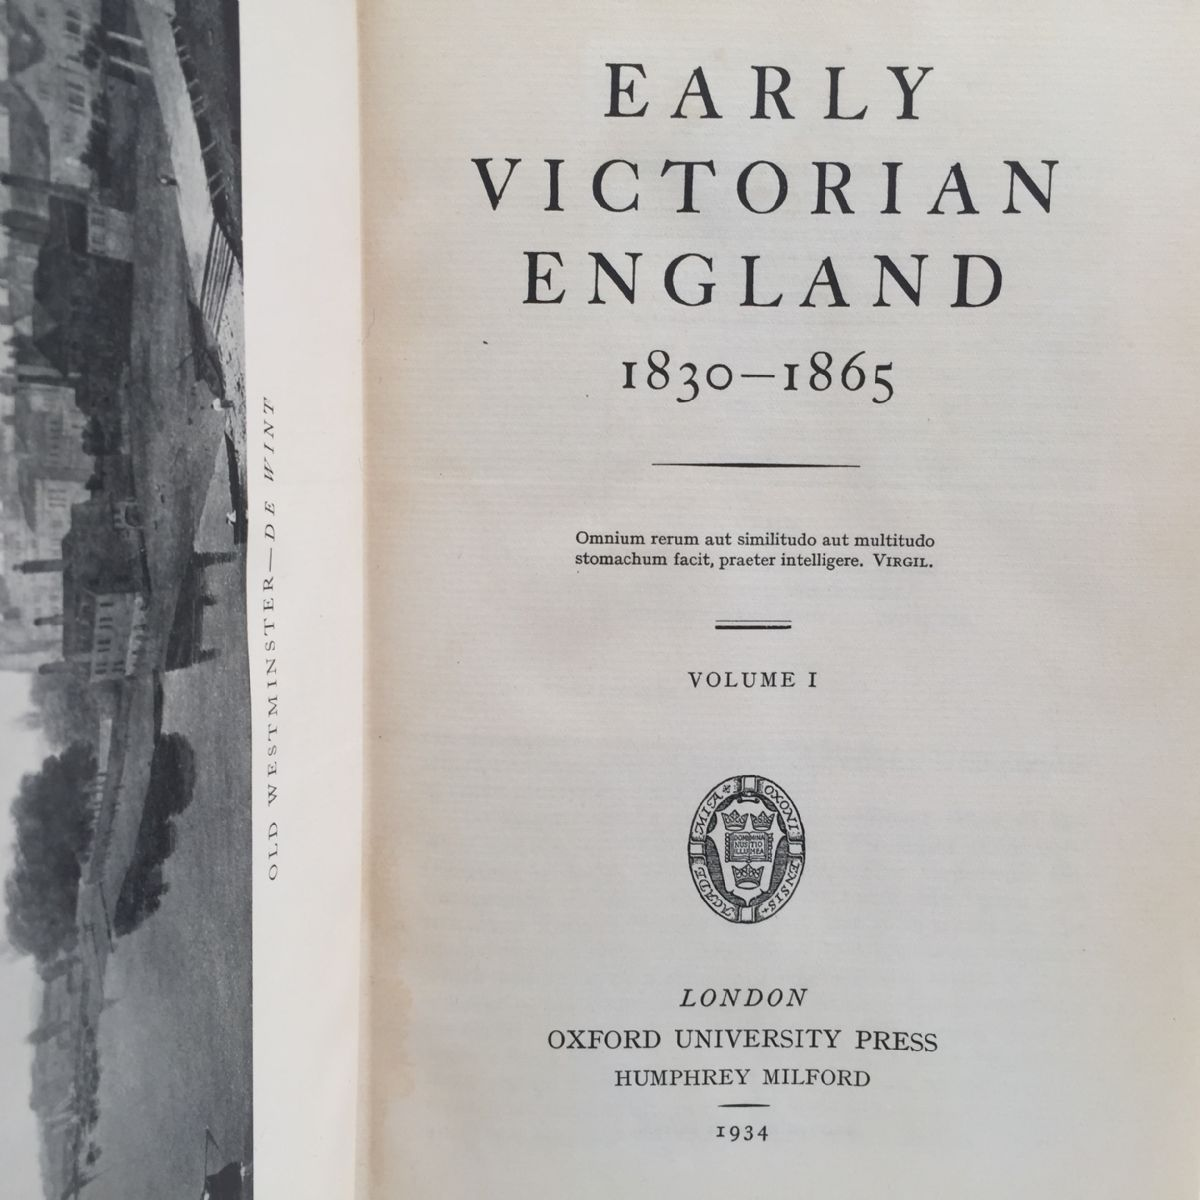 Early Victorian England, 1830-1865